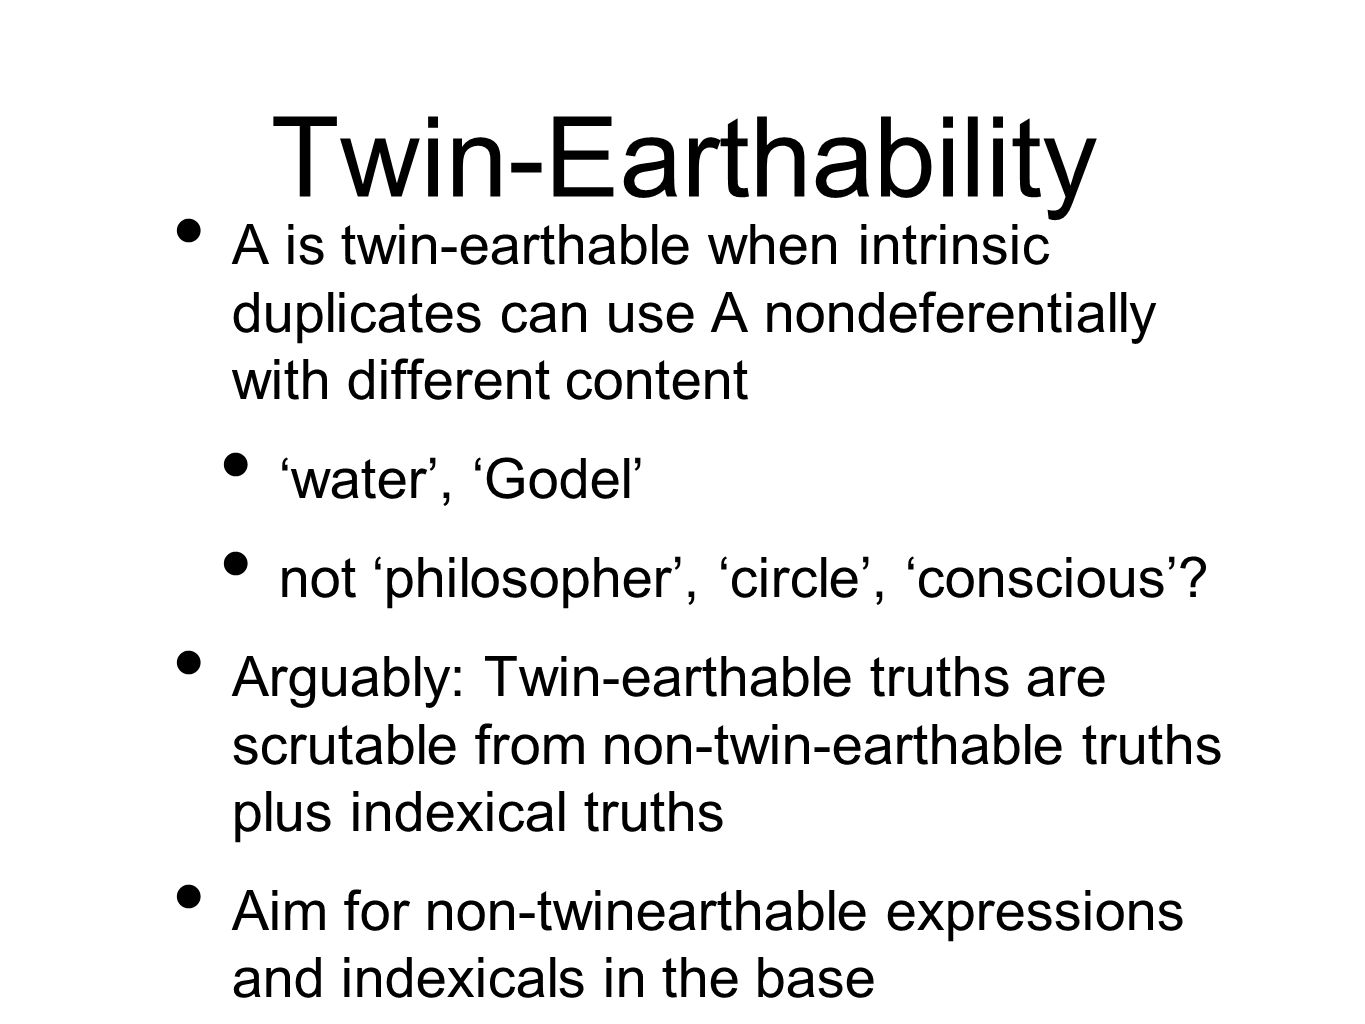 Twin-Earthability A is twin-earthable when intrinsic duplicates can use A nondeferentially with different content water, Godel not philosopher, circle